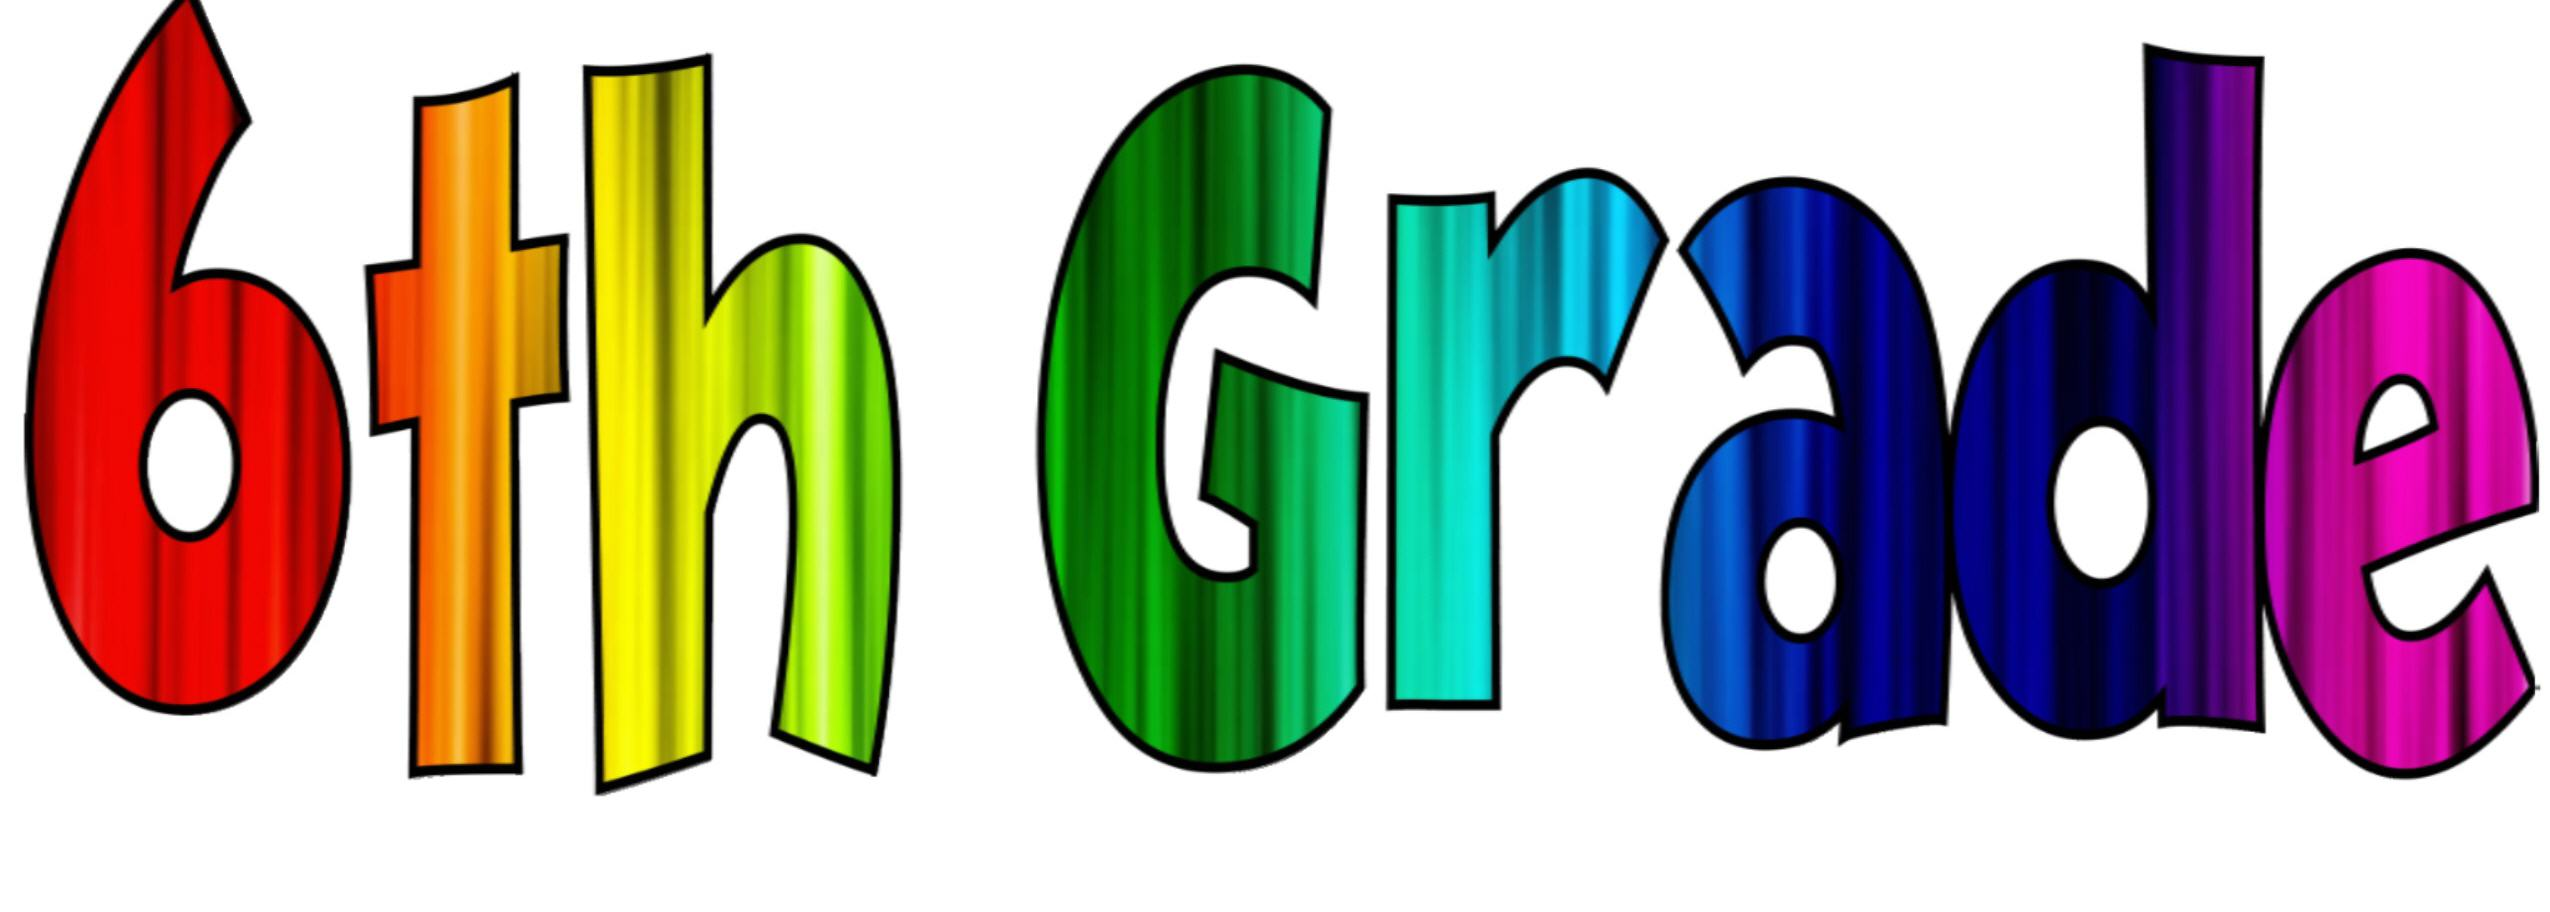 6th grade clipart 7 » Clipart Station.